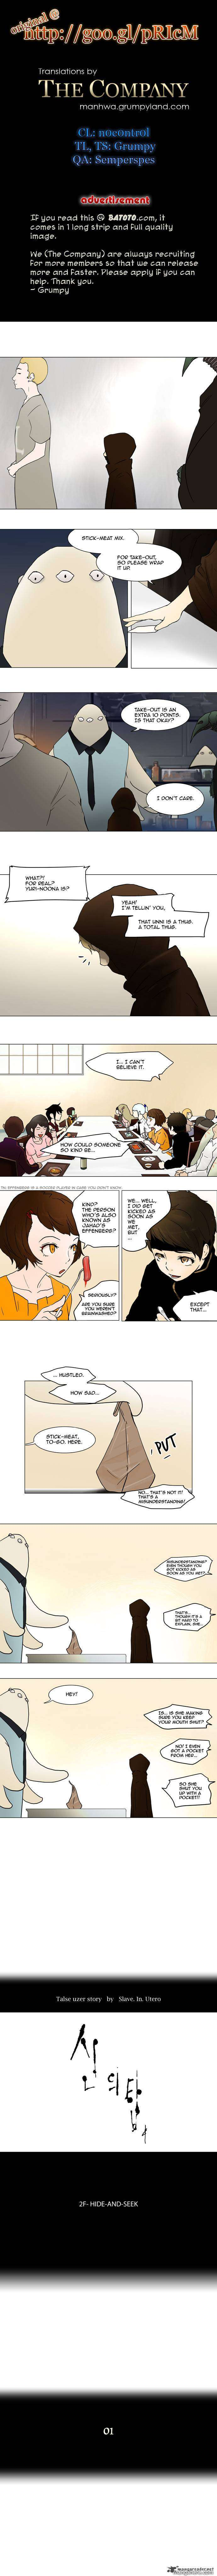 Tower of God 35 Page 1